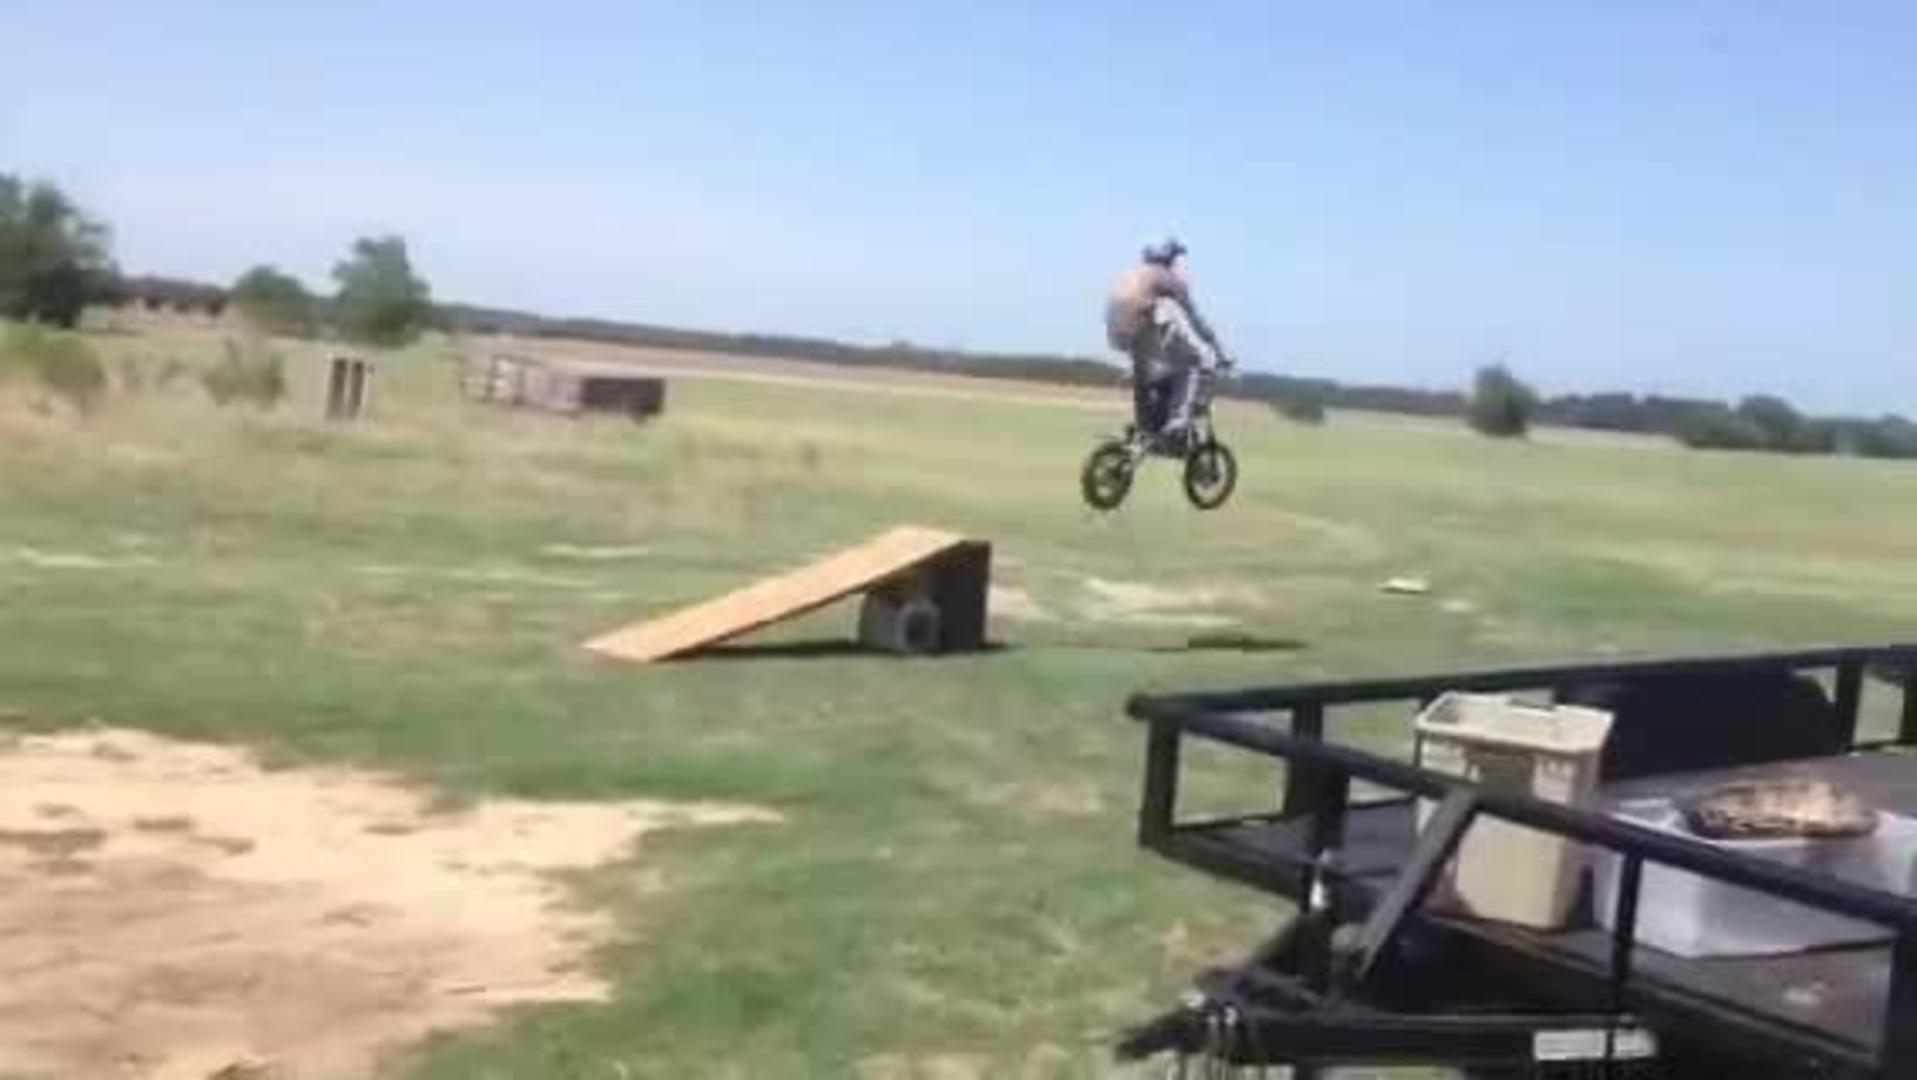 guy rides small dirt bike off ramp jukin media